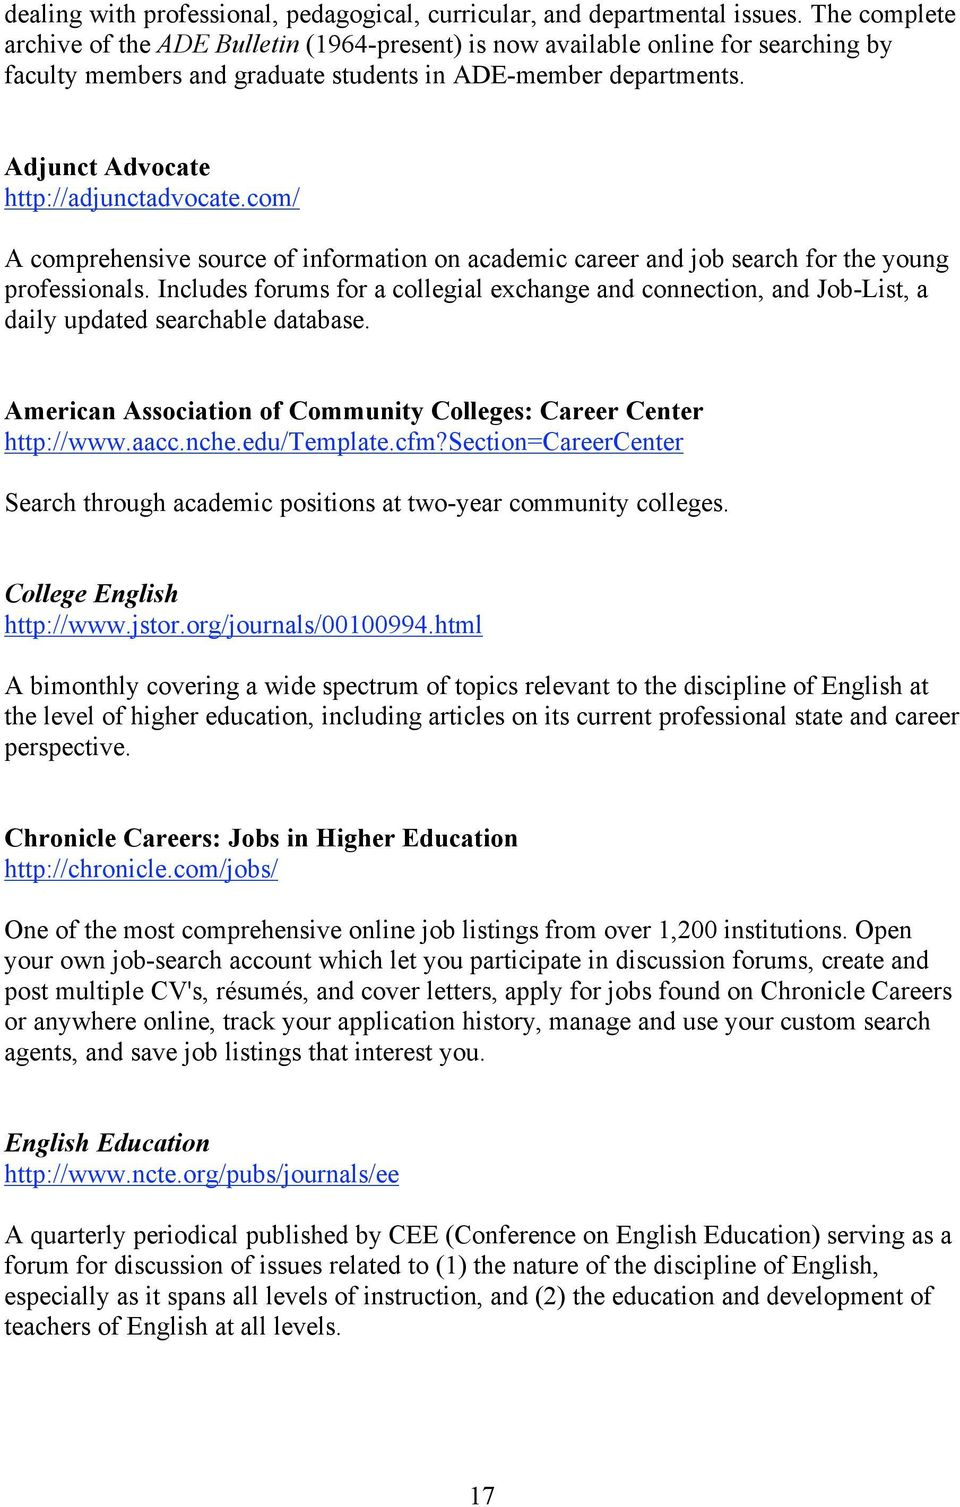 Adjunct Advocate http://adjunctadvocate.com/ A comprehensive source of information on academic career and job search for the young professionals.